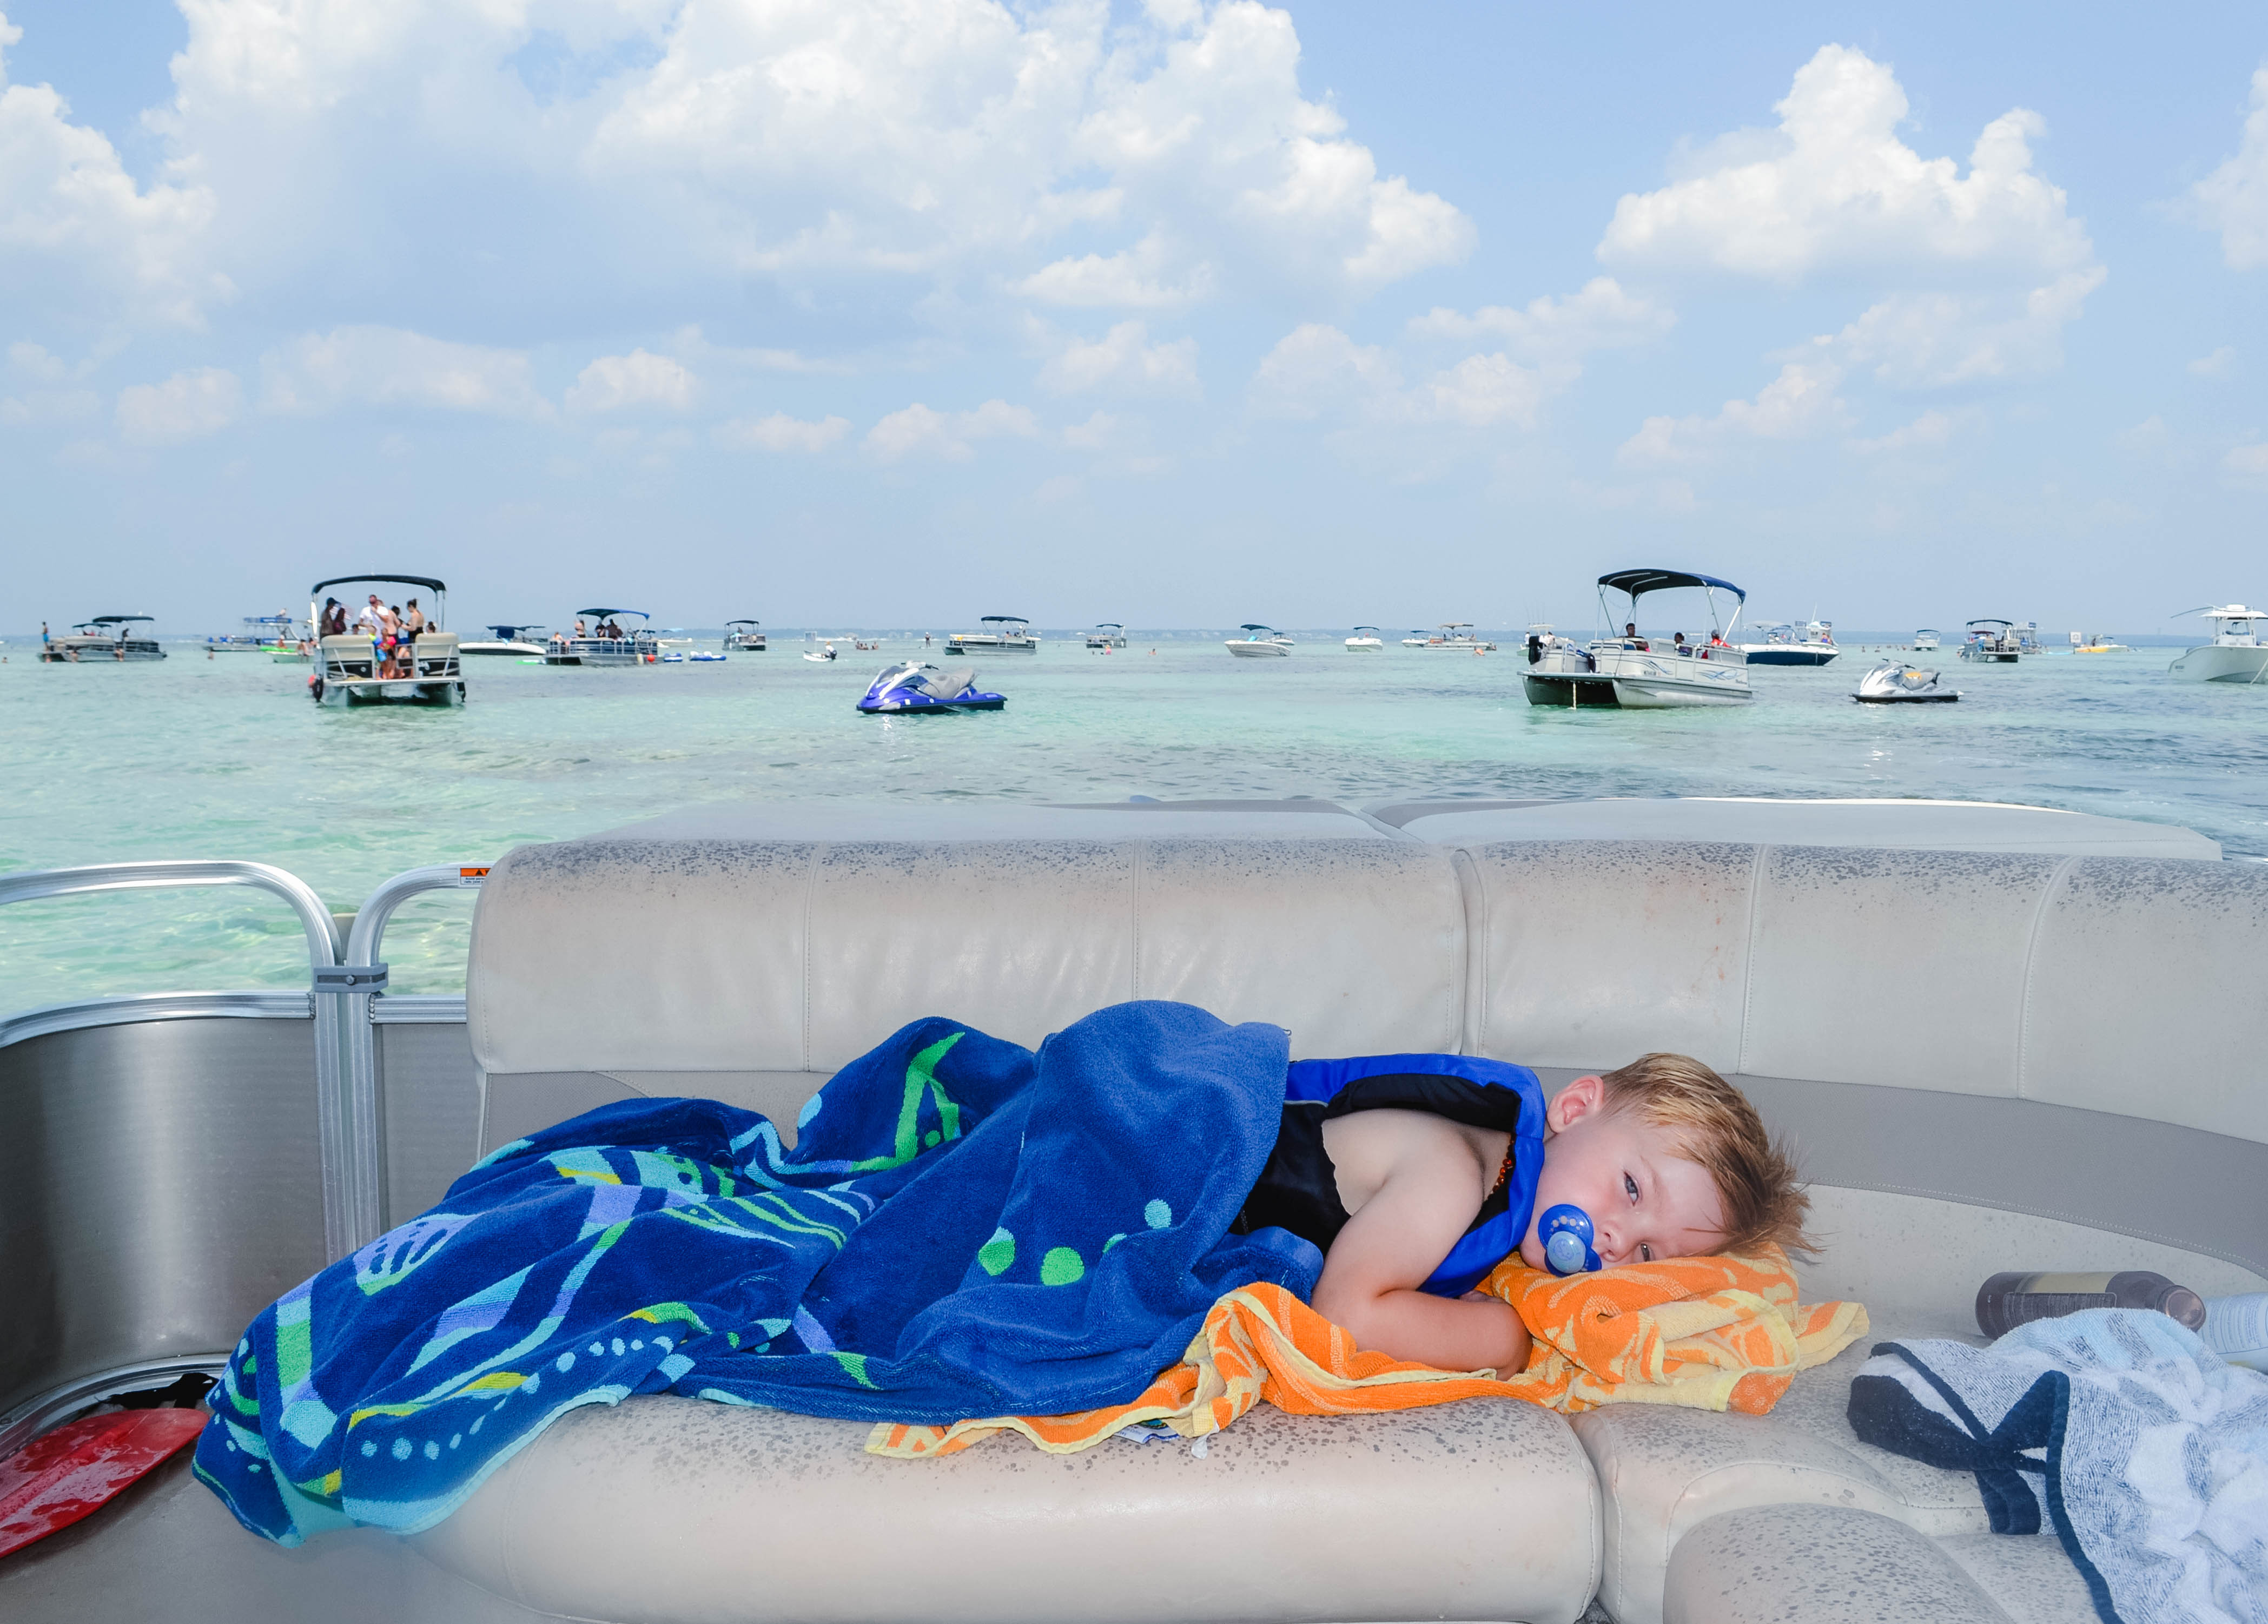 Crab Island in Destin, Florida: What Locals Don't Tell You